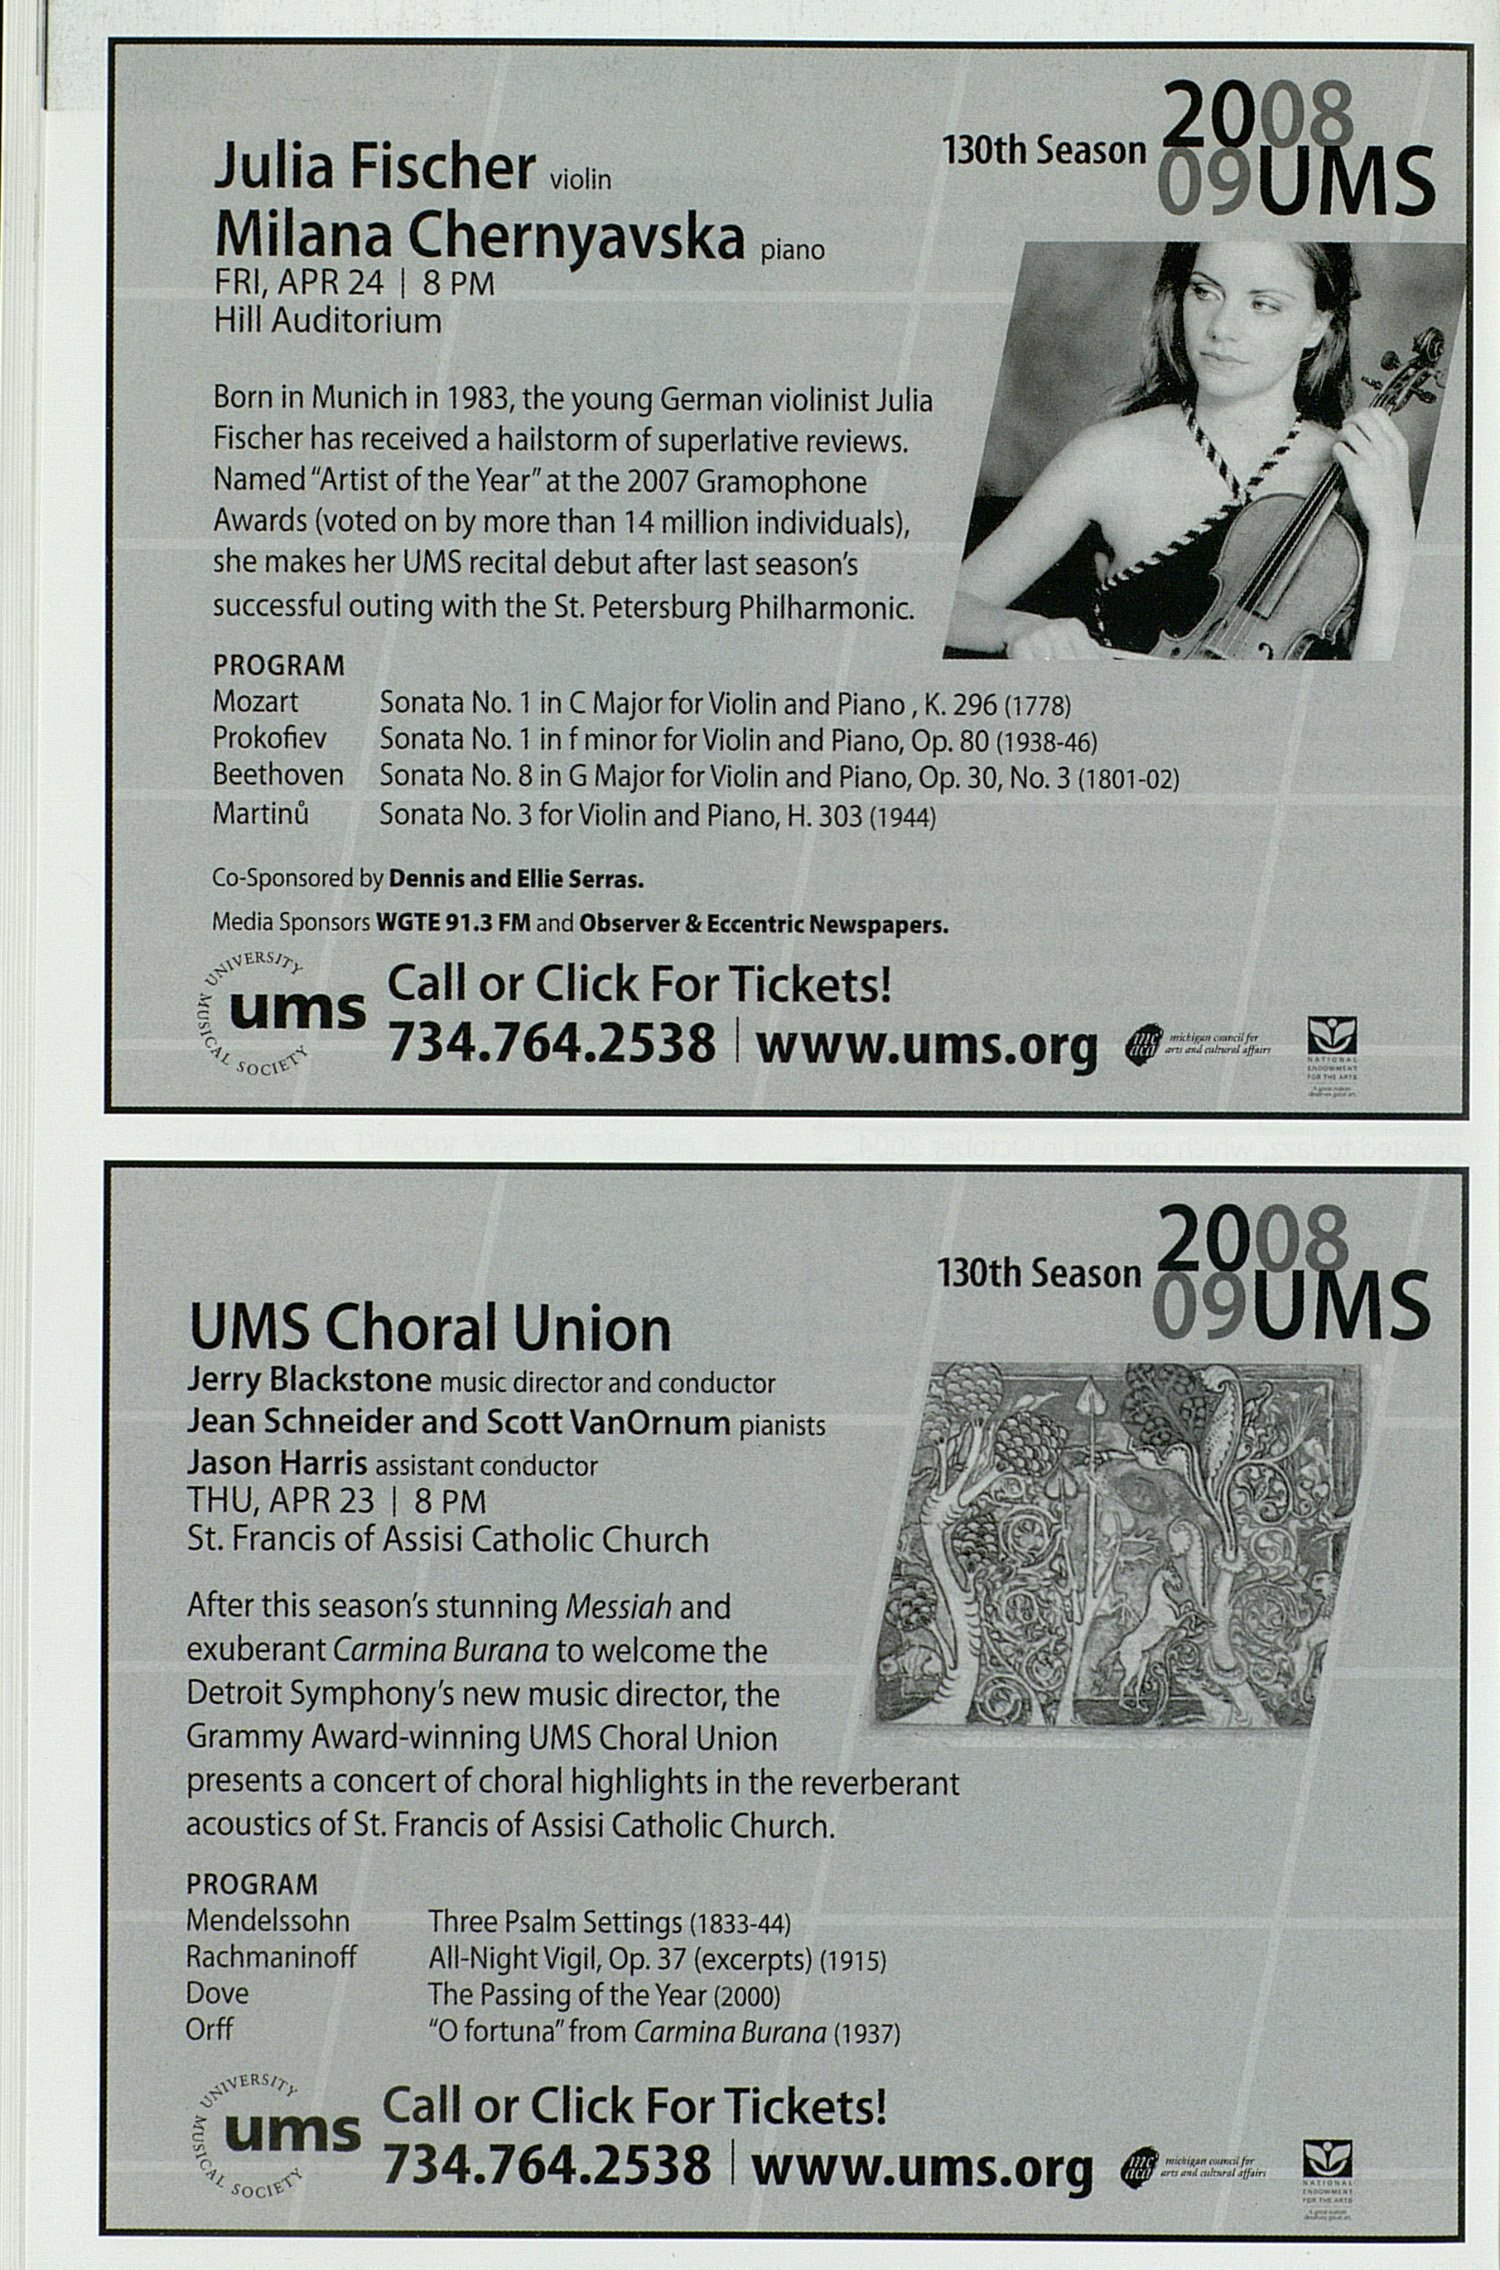 UMS Concert Program, Tuesday Mar. 10 To 14: University Musical Society: Winter 2009 - Tuesday Mar. 10 To 14 --  image